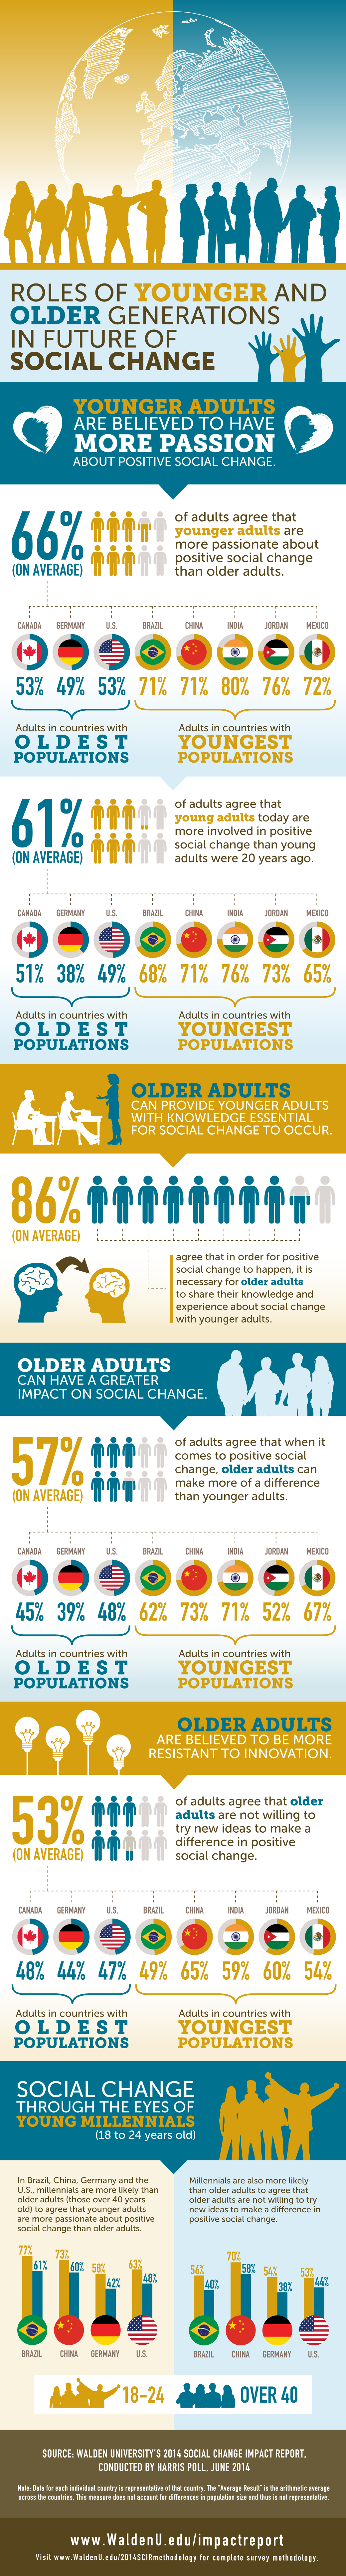 Roles of Younger and Older Generations in the Future of Social Change